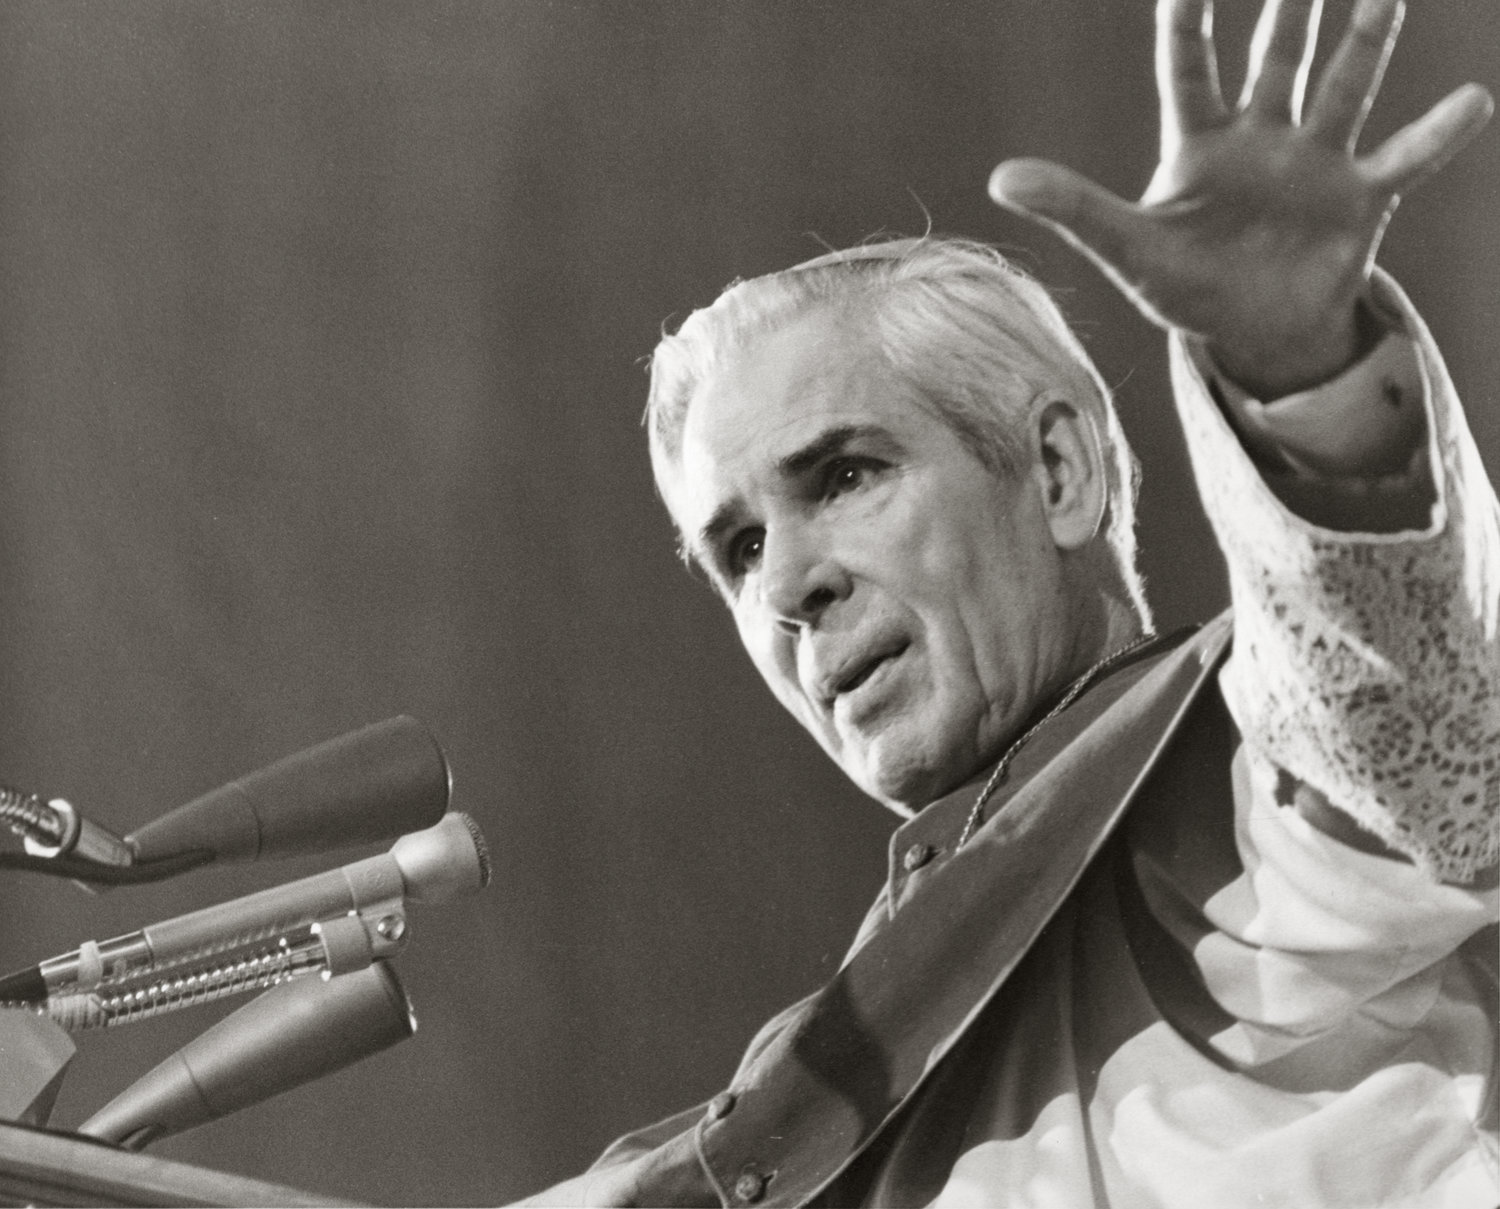 Archbishop Fulton J. Sheen is pictured in an undated file photo. Bishop Daniel R. Jenky of Peoria, Ill., announced June 27, 2019, that the remains of Archbishop Sheen, a candidate for sainthood, were being transferred from New York's St. Patrick's Cathedral to the Cathedral of St. Mary of the Immaculate Conception in Peoria.